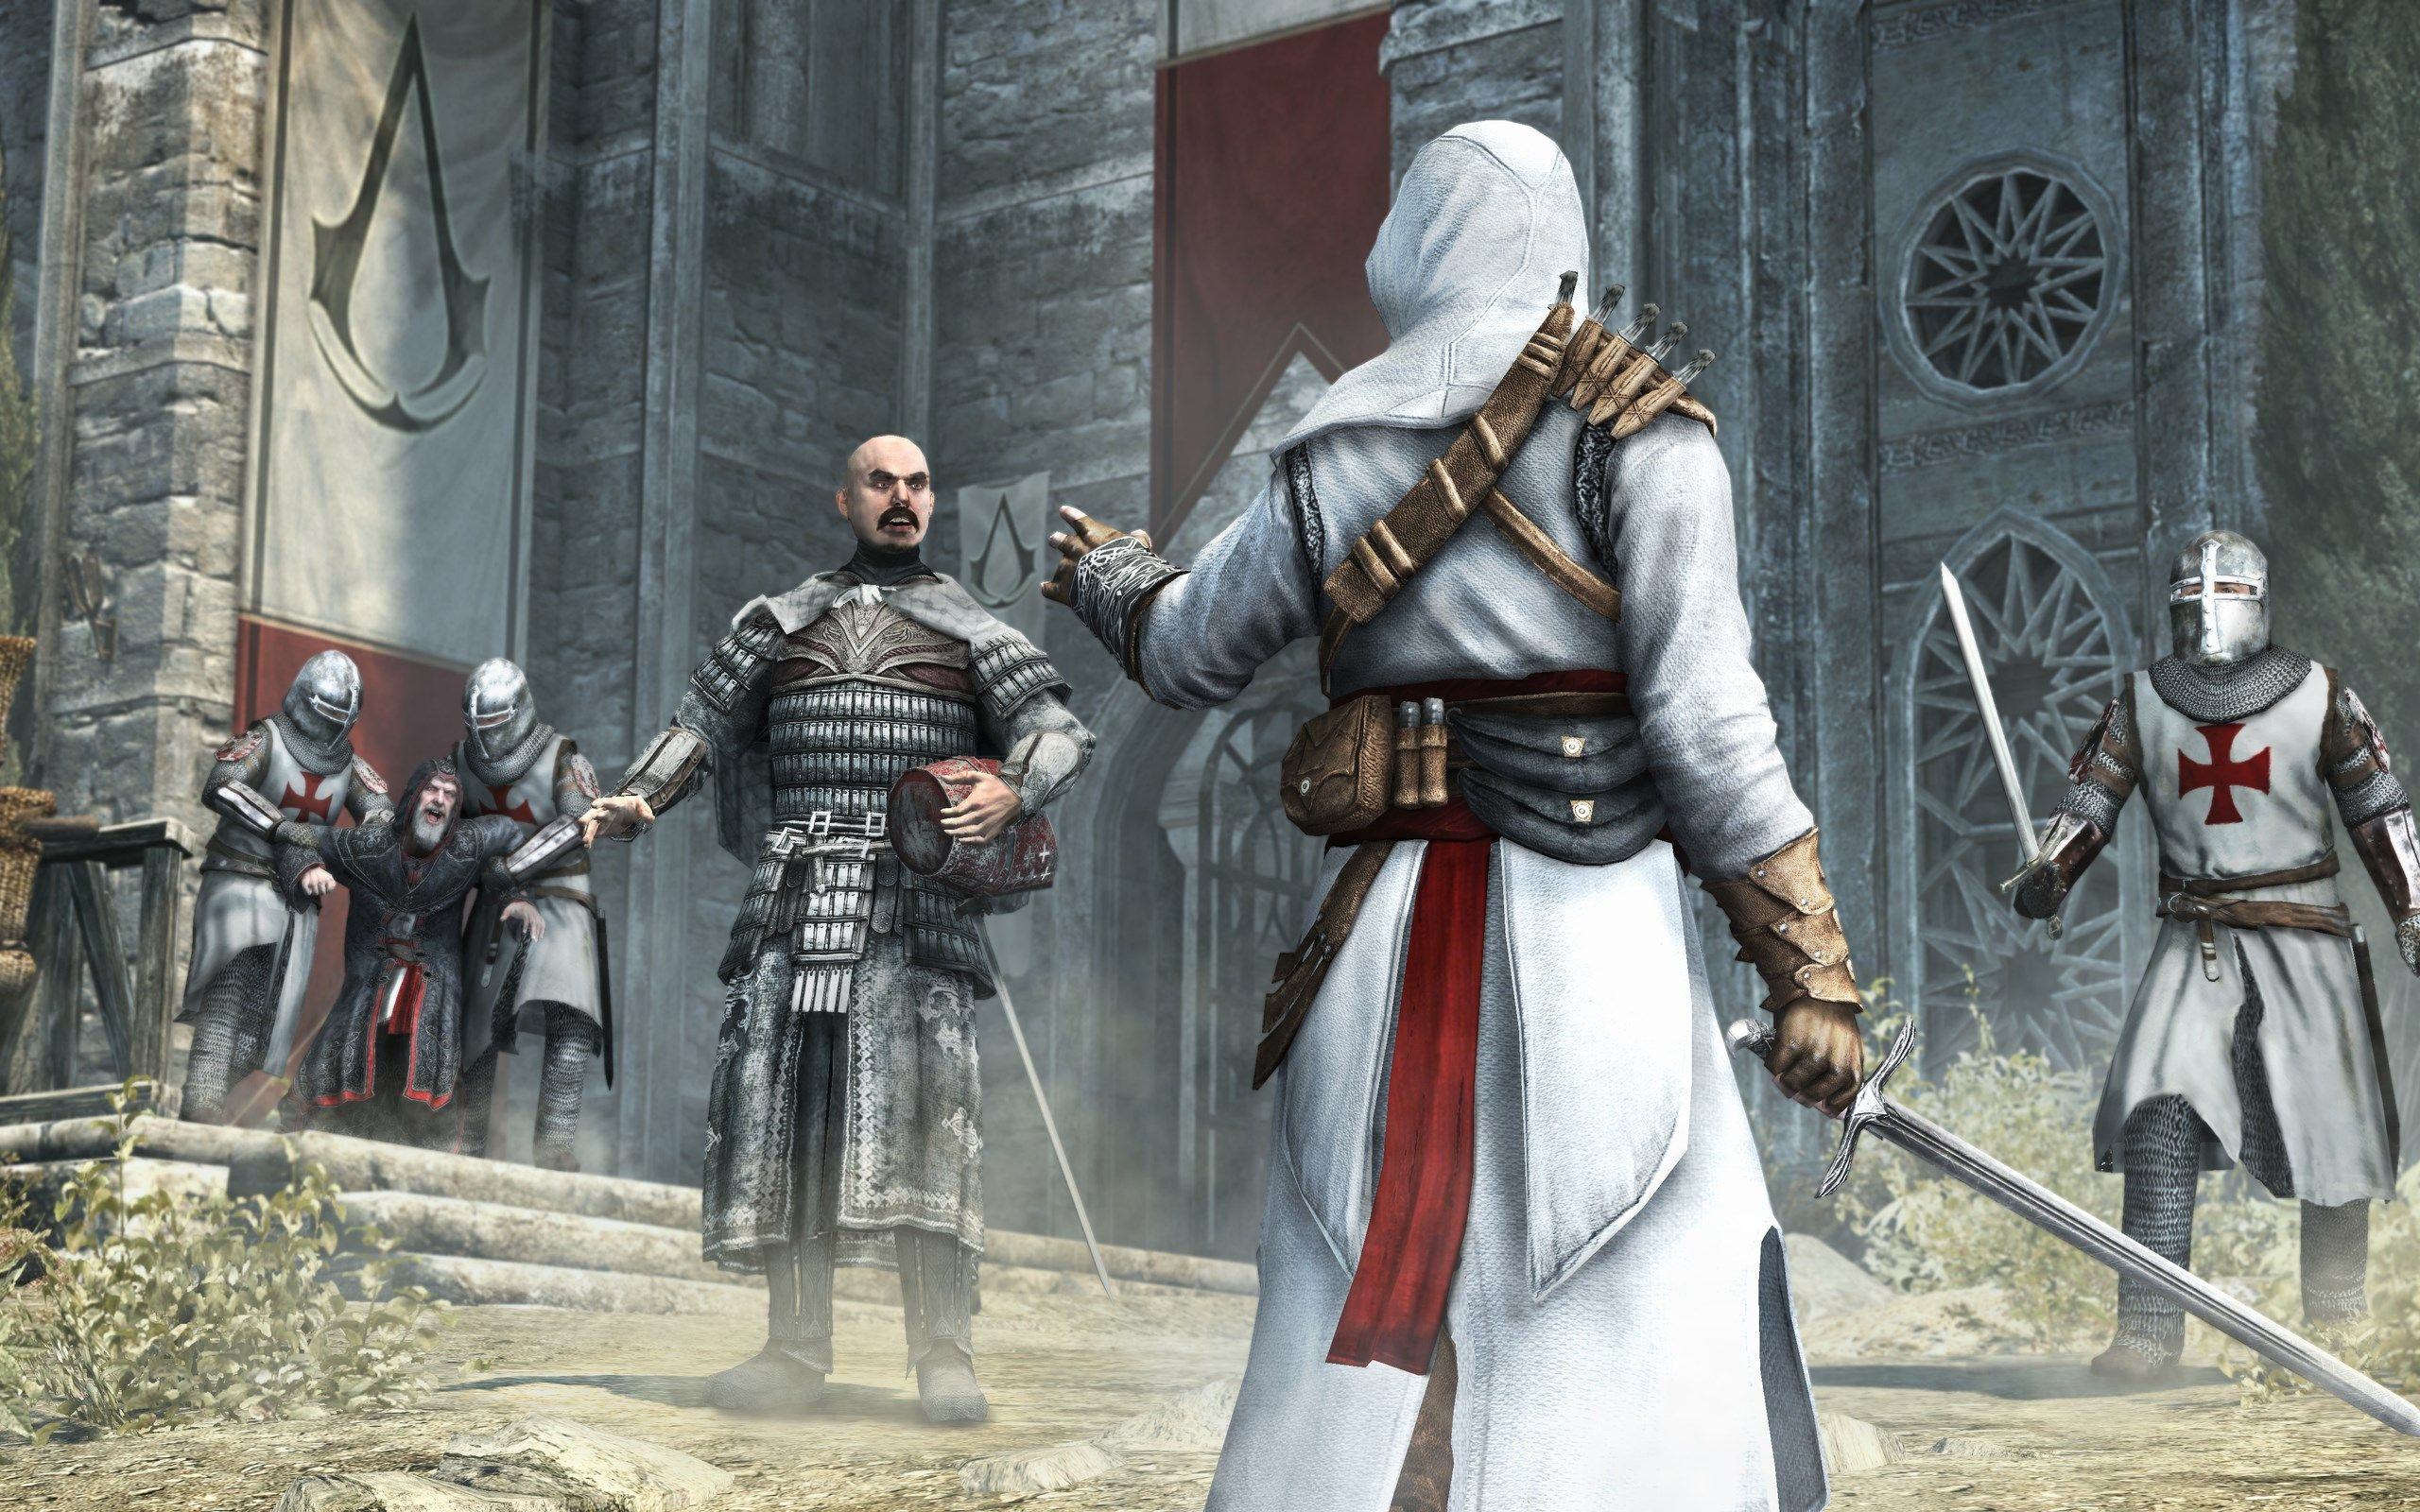 Free Download Pictures Of Assassins Creed Revelations Best